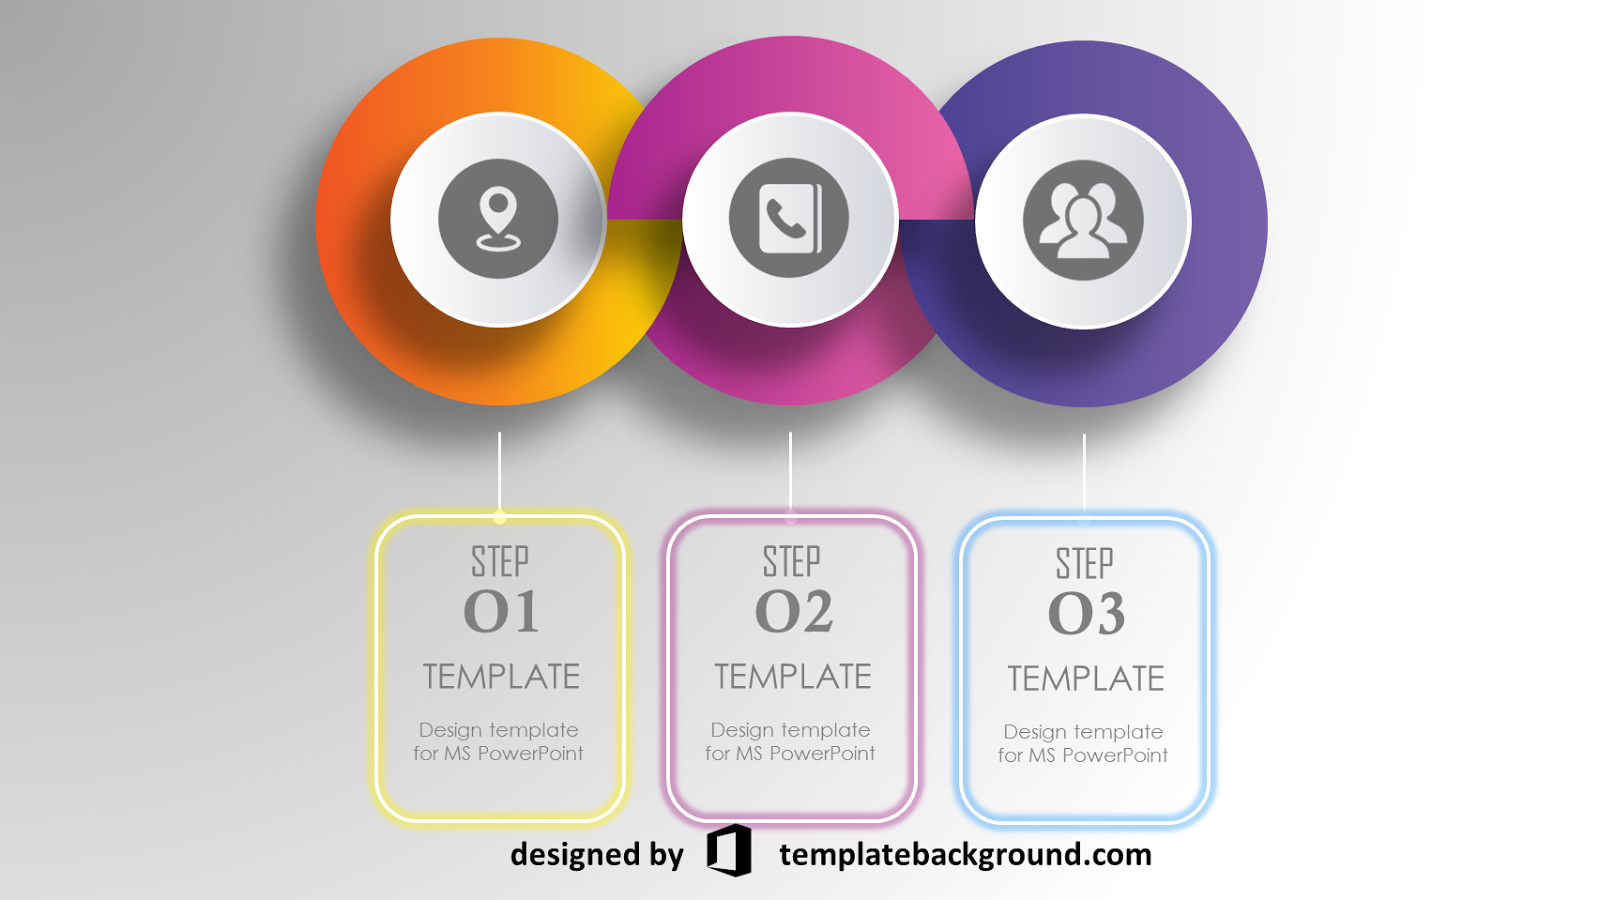 Free 3d animated powerpoint templates download google slides free 3d animated powerpoint templates download toneelgroepblik Gallery